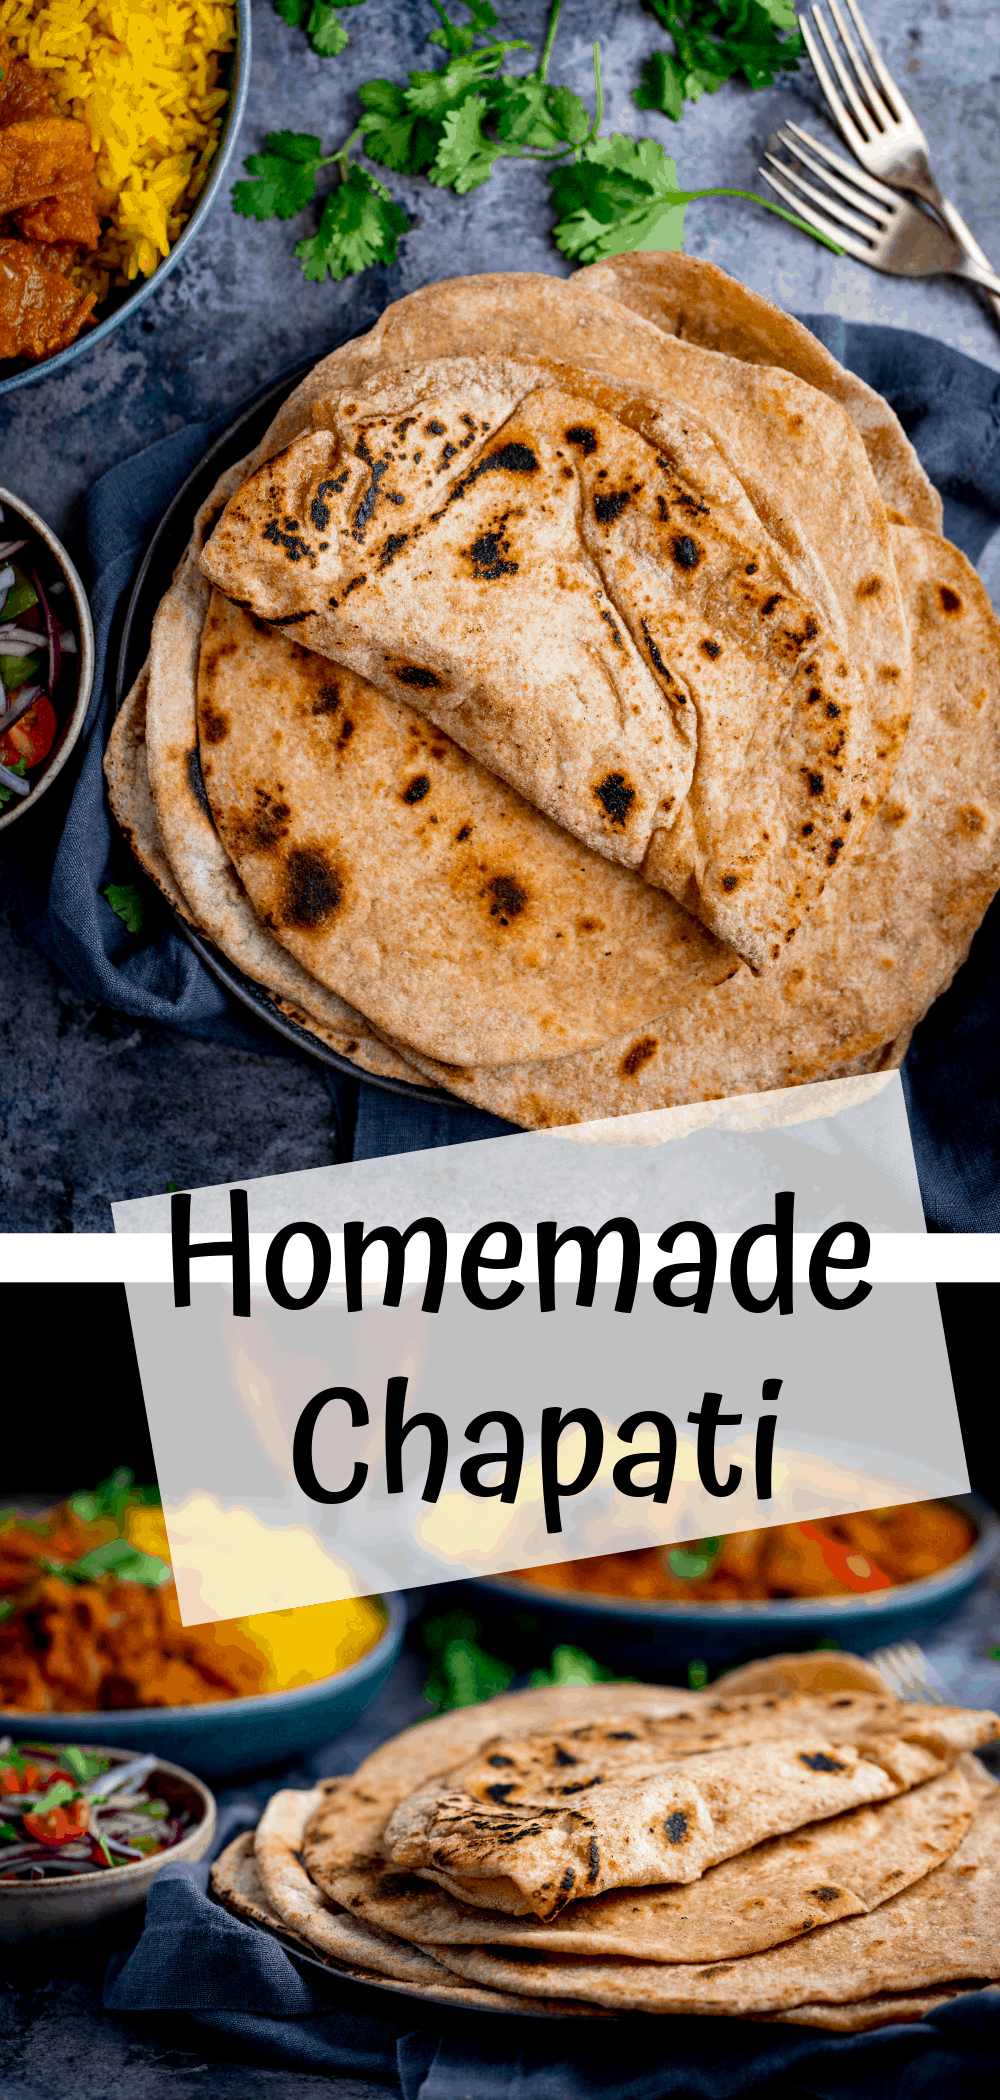 Two images of homemade chapati on a dark background